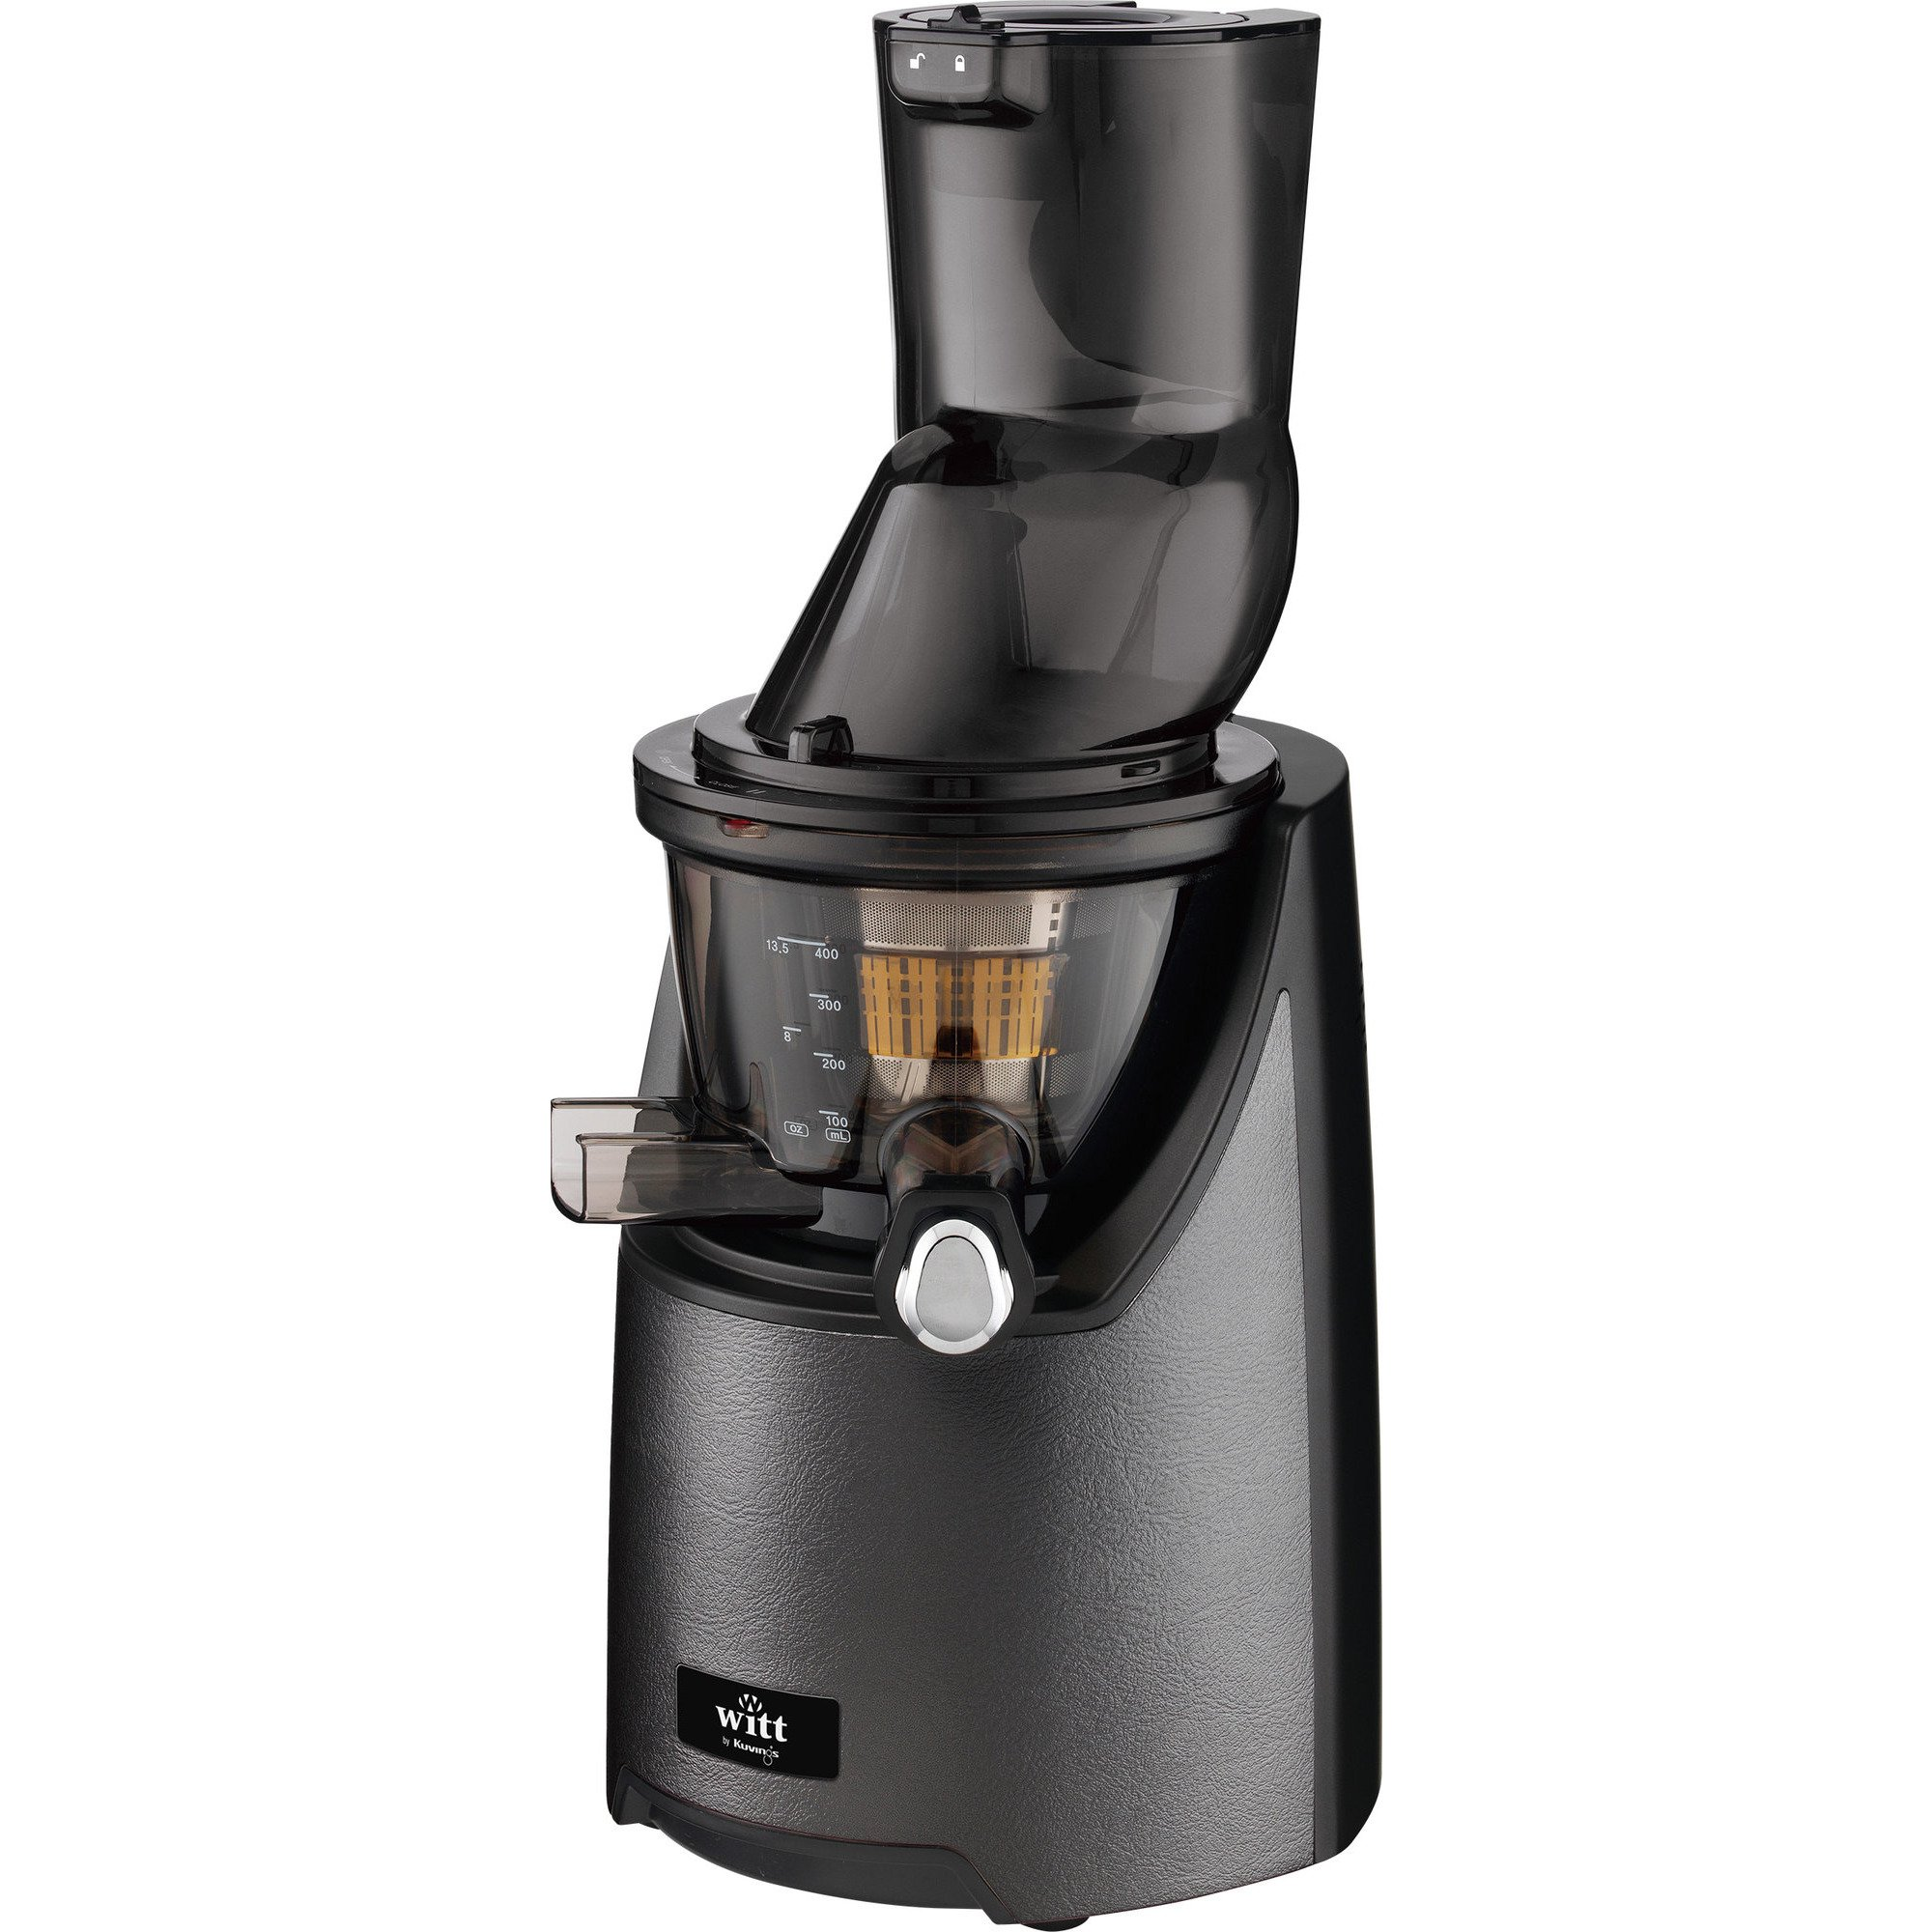 Witt by Kuvings EVO920 Slow Juicer